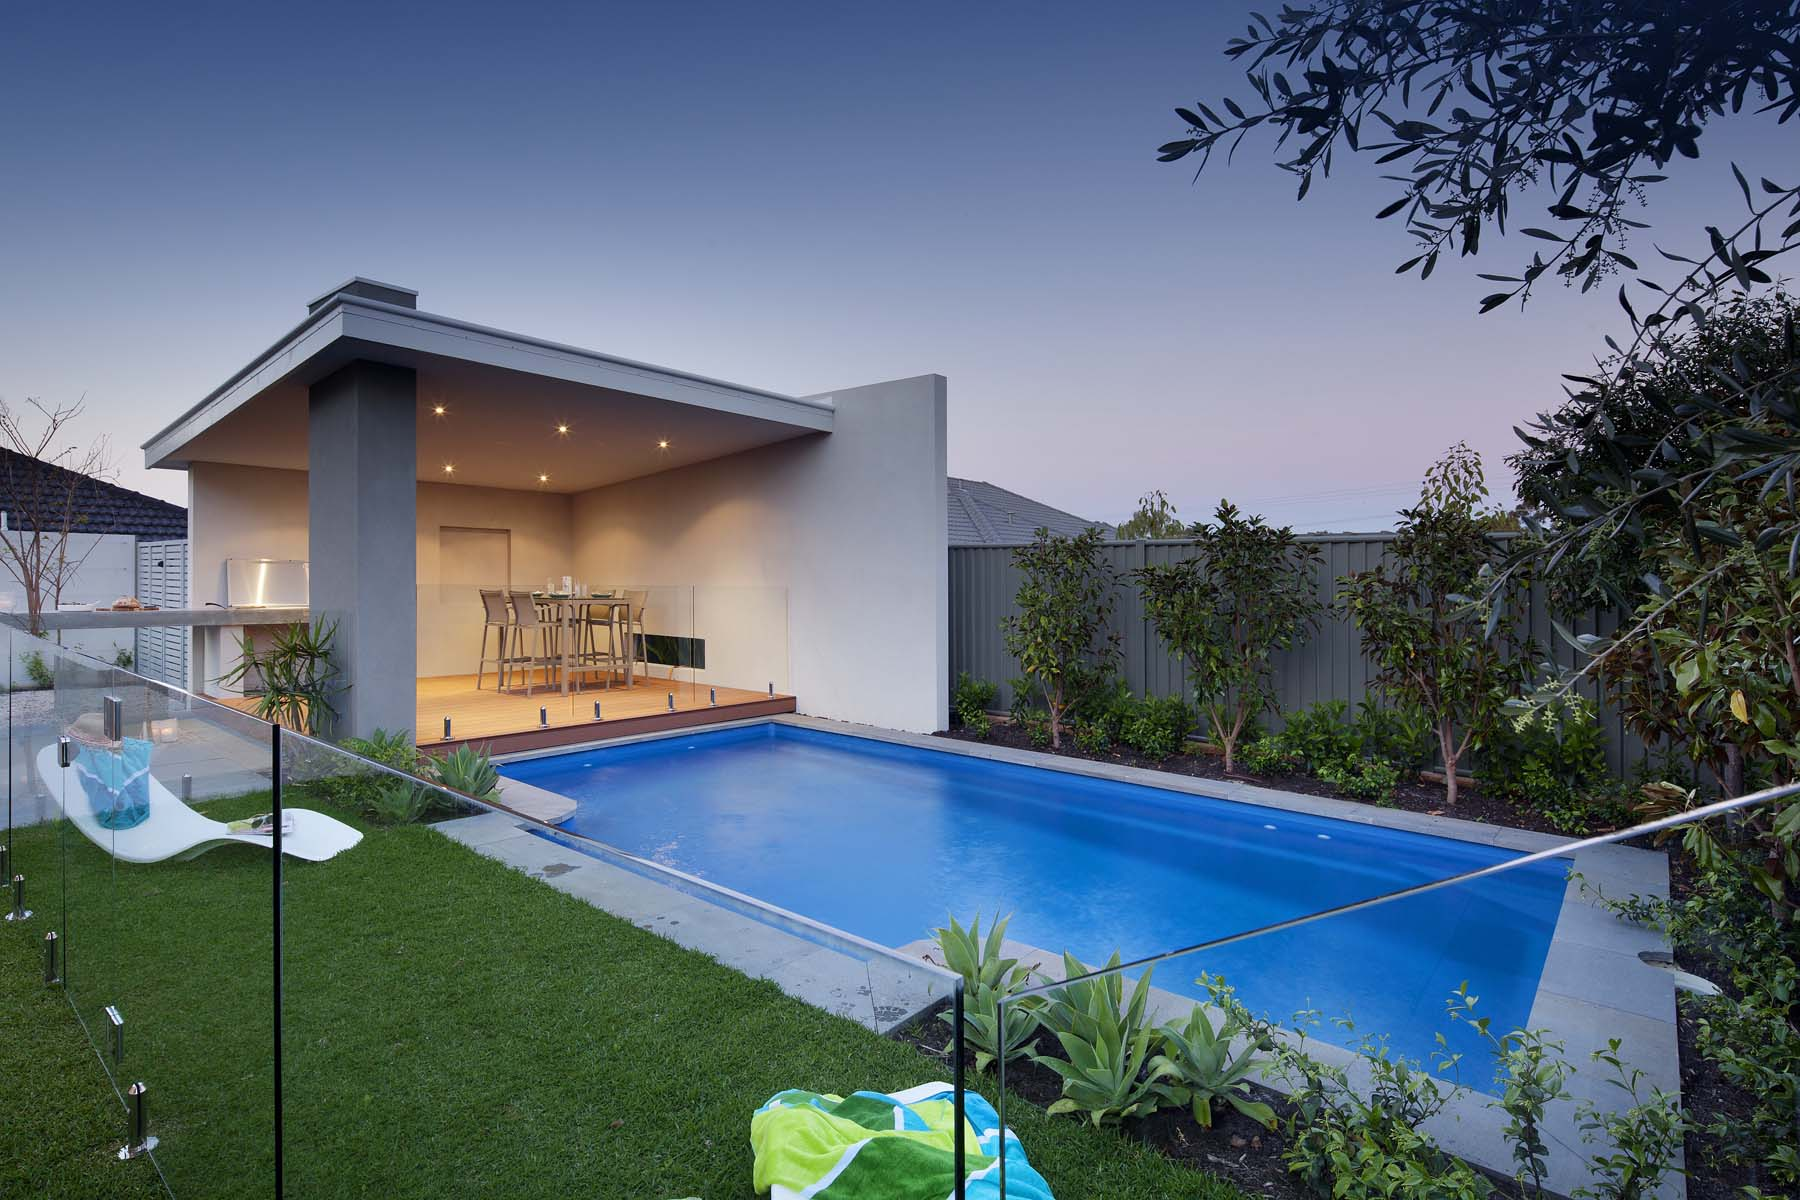 Swimming Pool Builders in Canberra